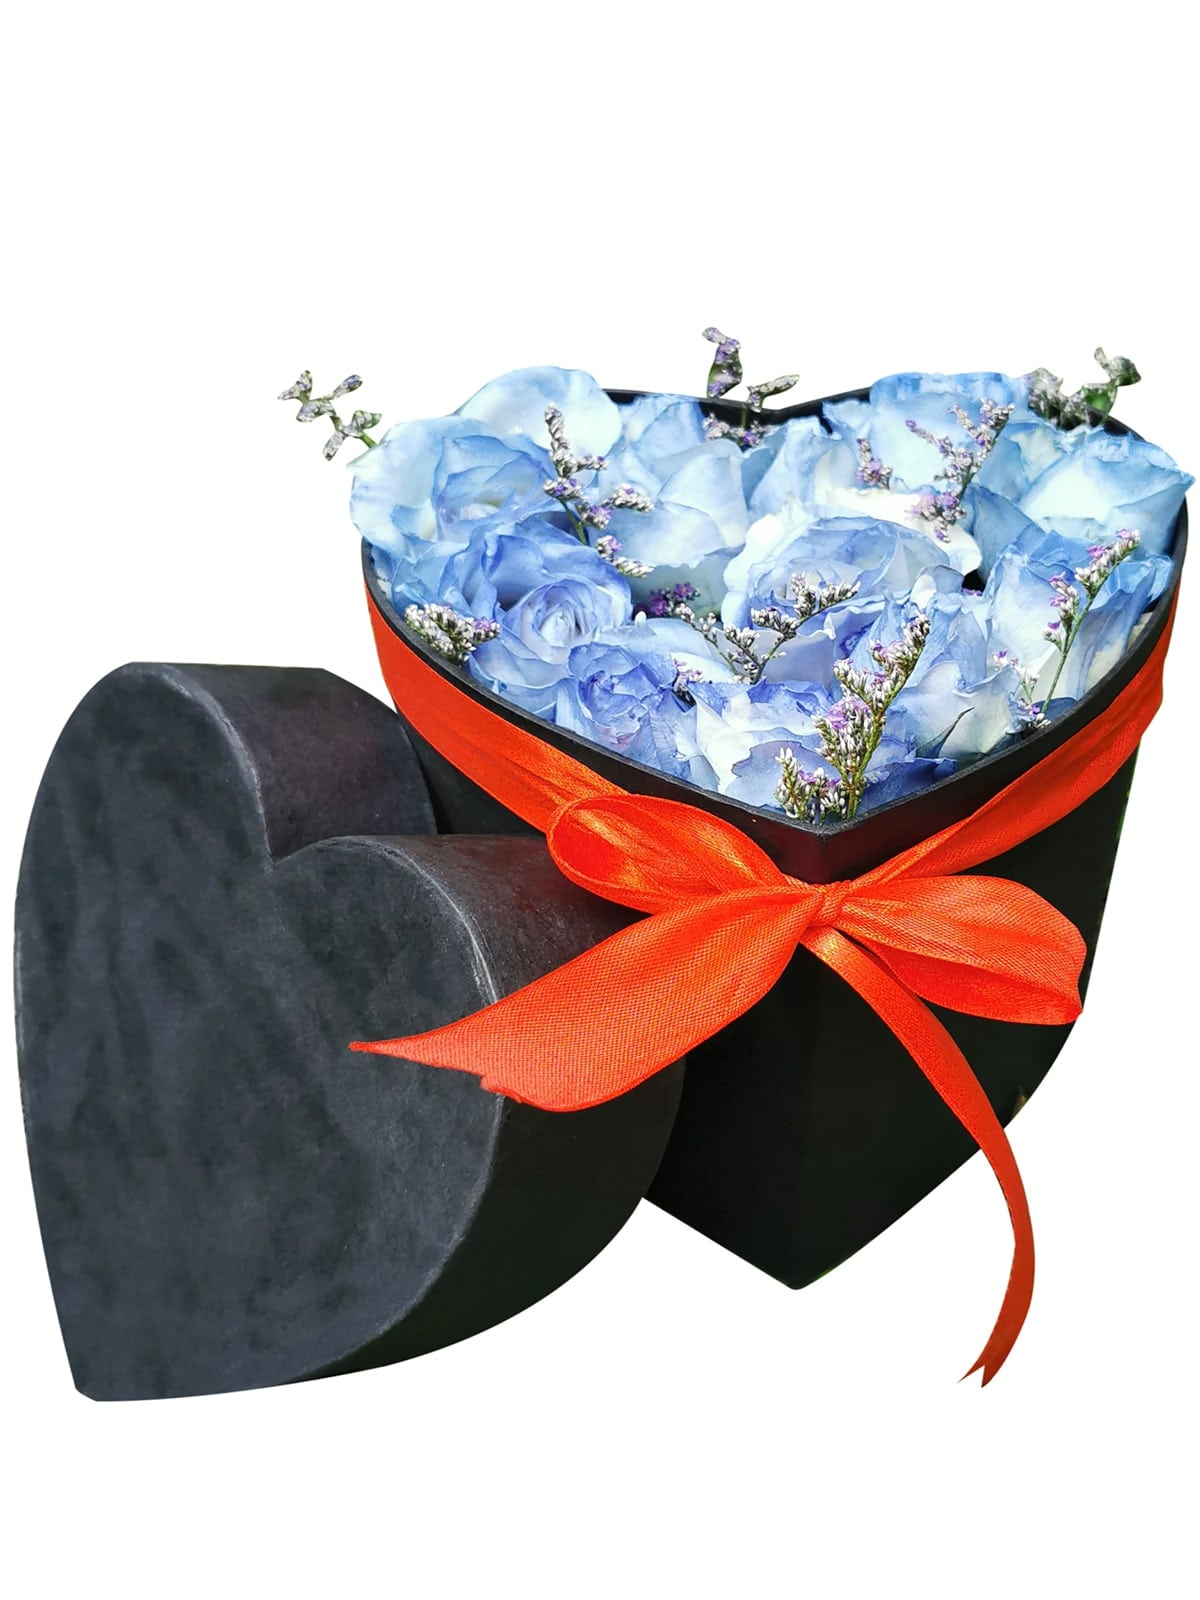 Blue Roses Heart Love Box